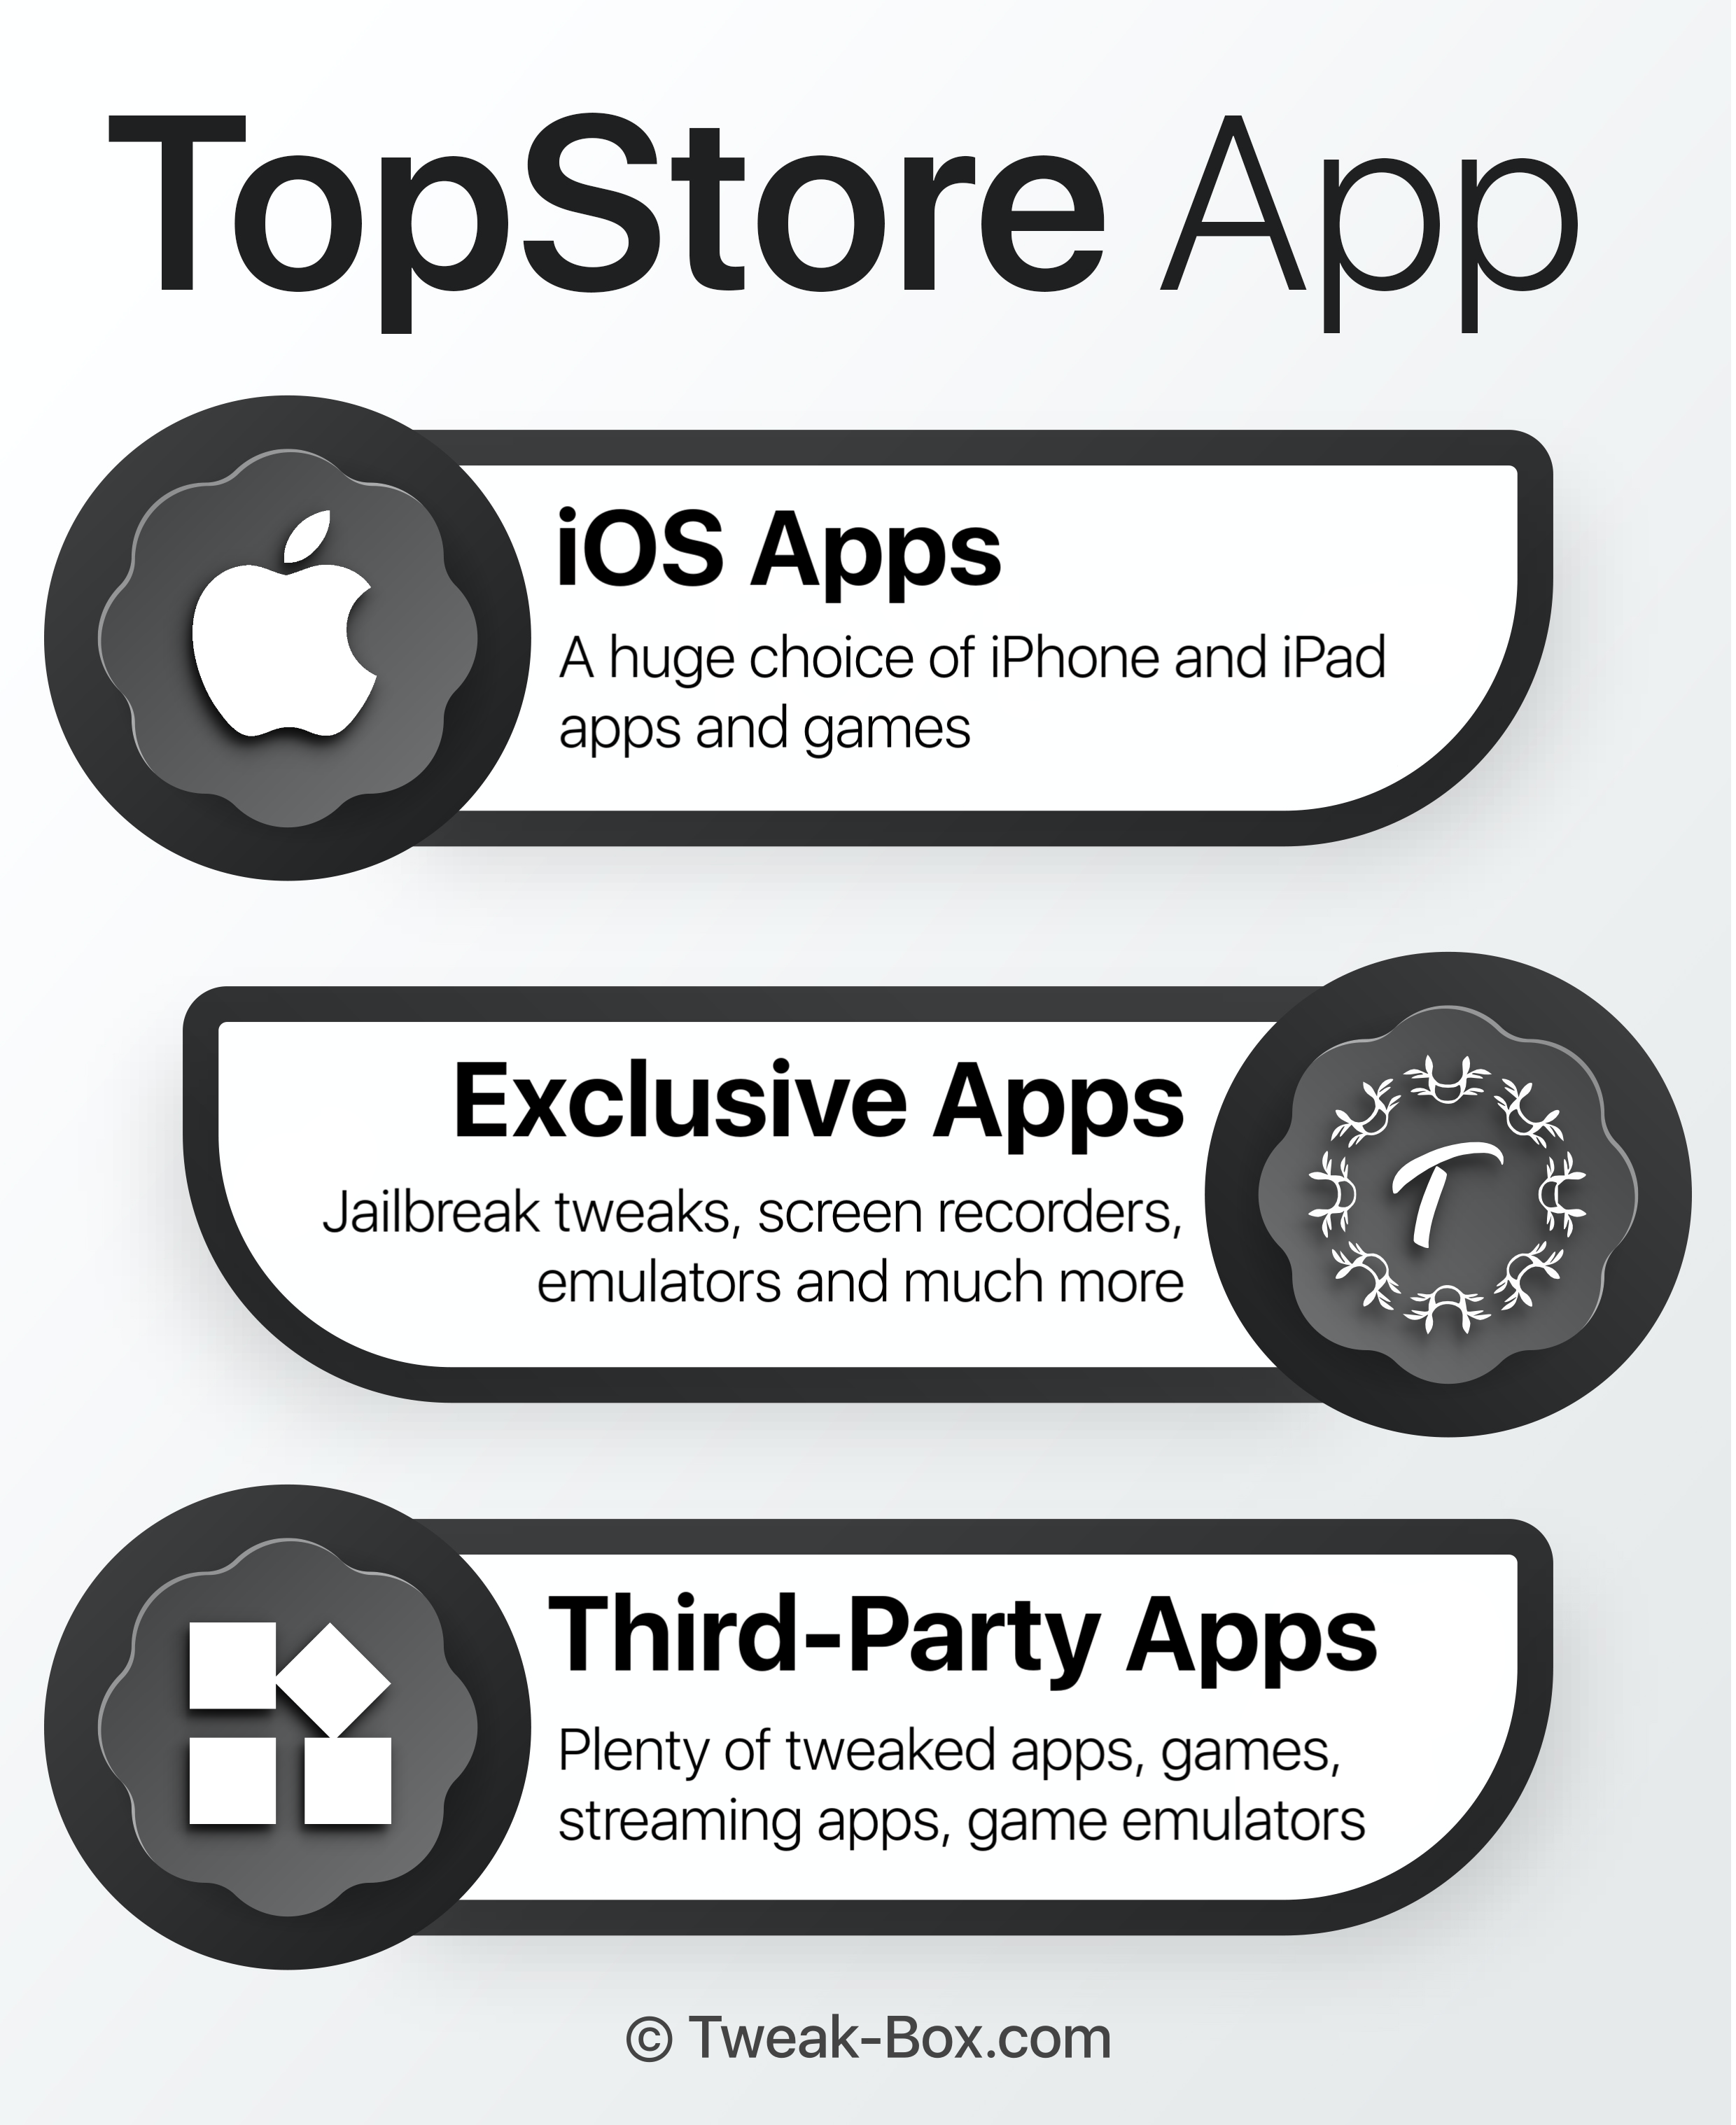 Download For Free 15 Png Roblox Icon Ios Top Images At Topstore App Top Store Vip Download